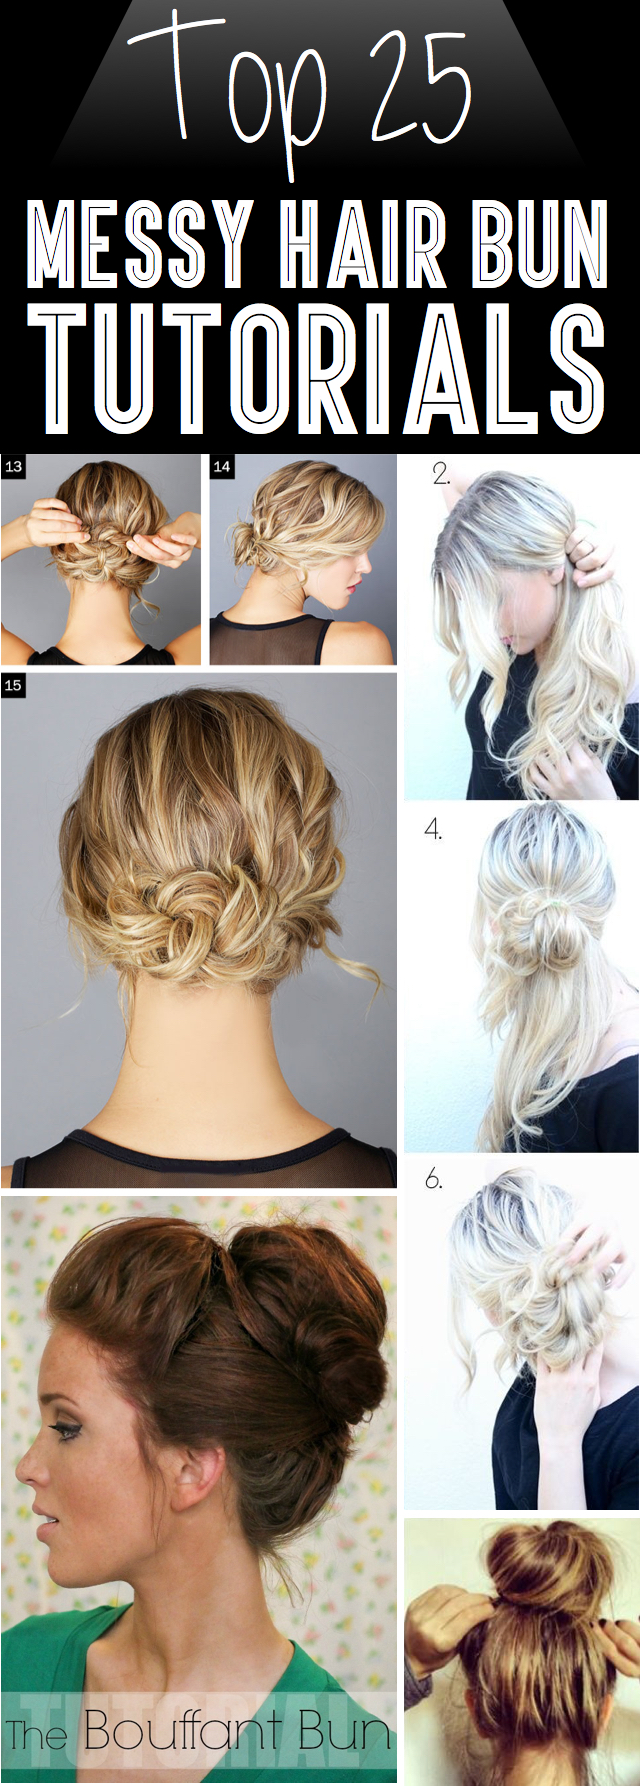 Groovy Top 25 Messy Hair Bun Tutorials Perfect For Those Lazy Mornings Hairstyle Inspiration Daily Dogsangcom